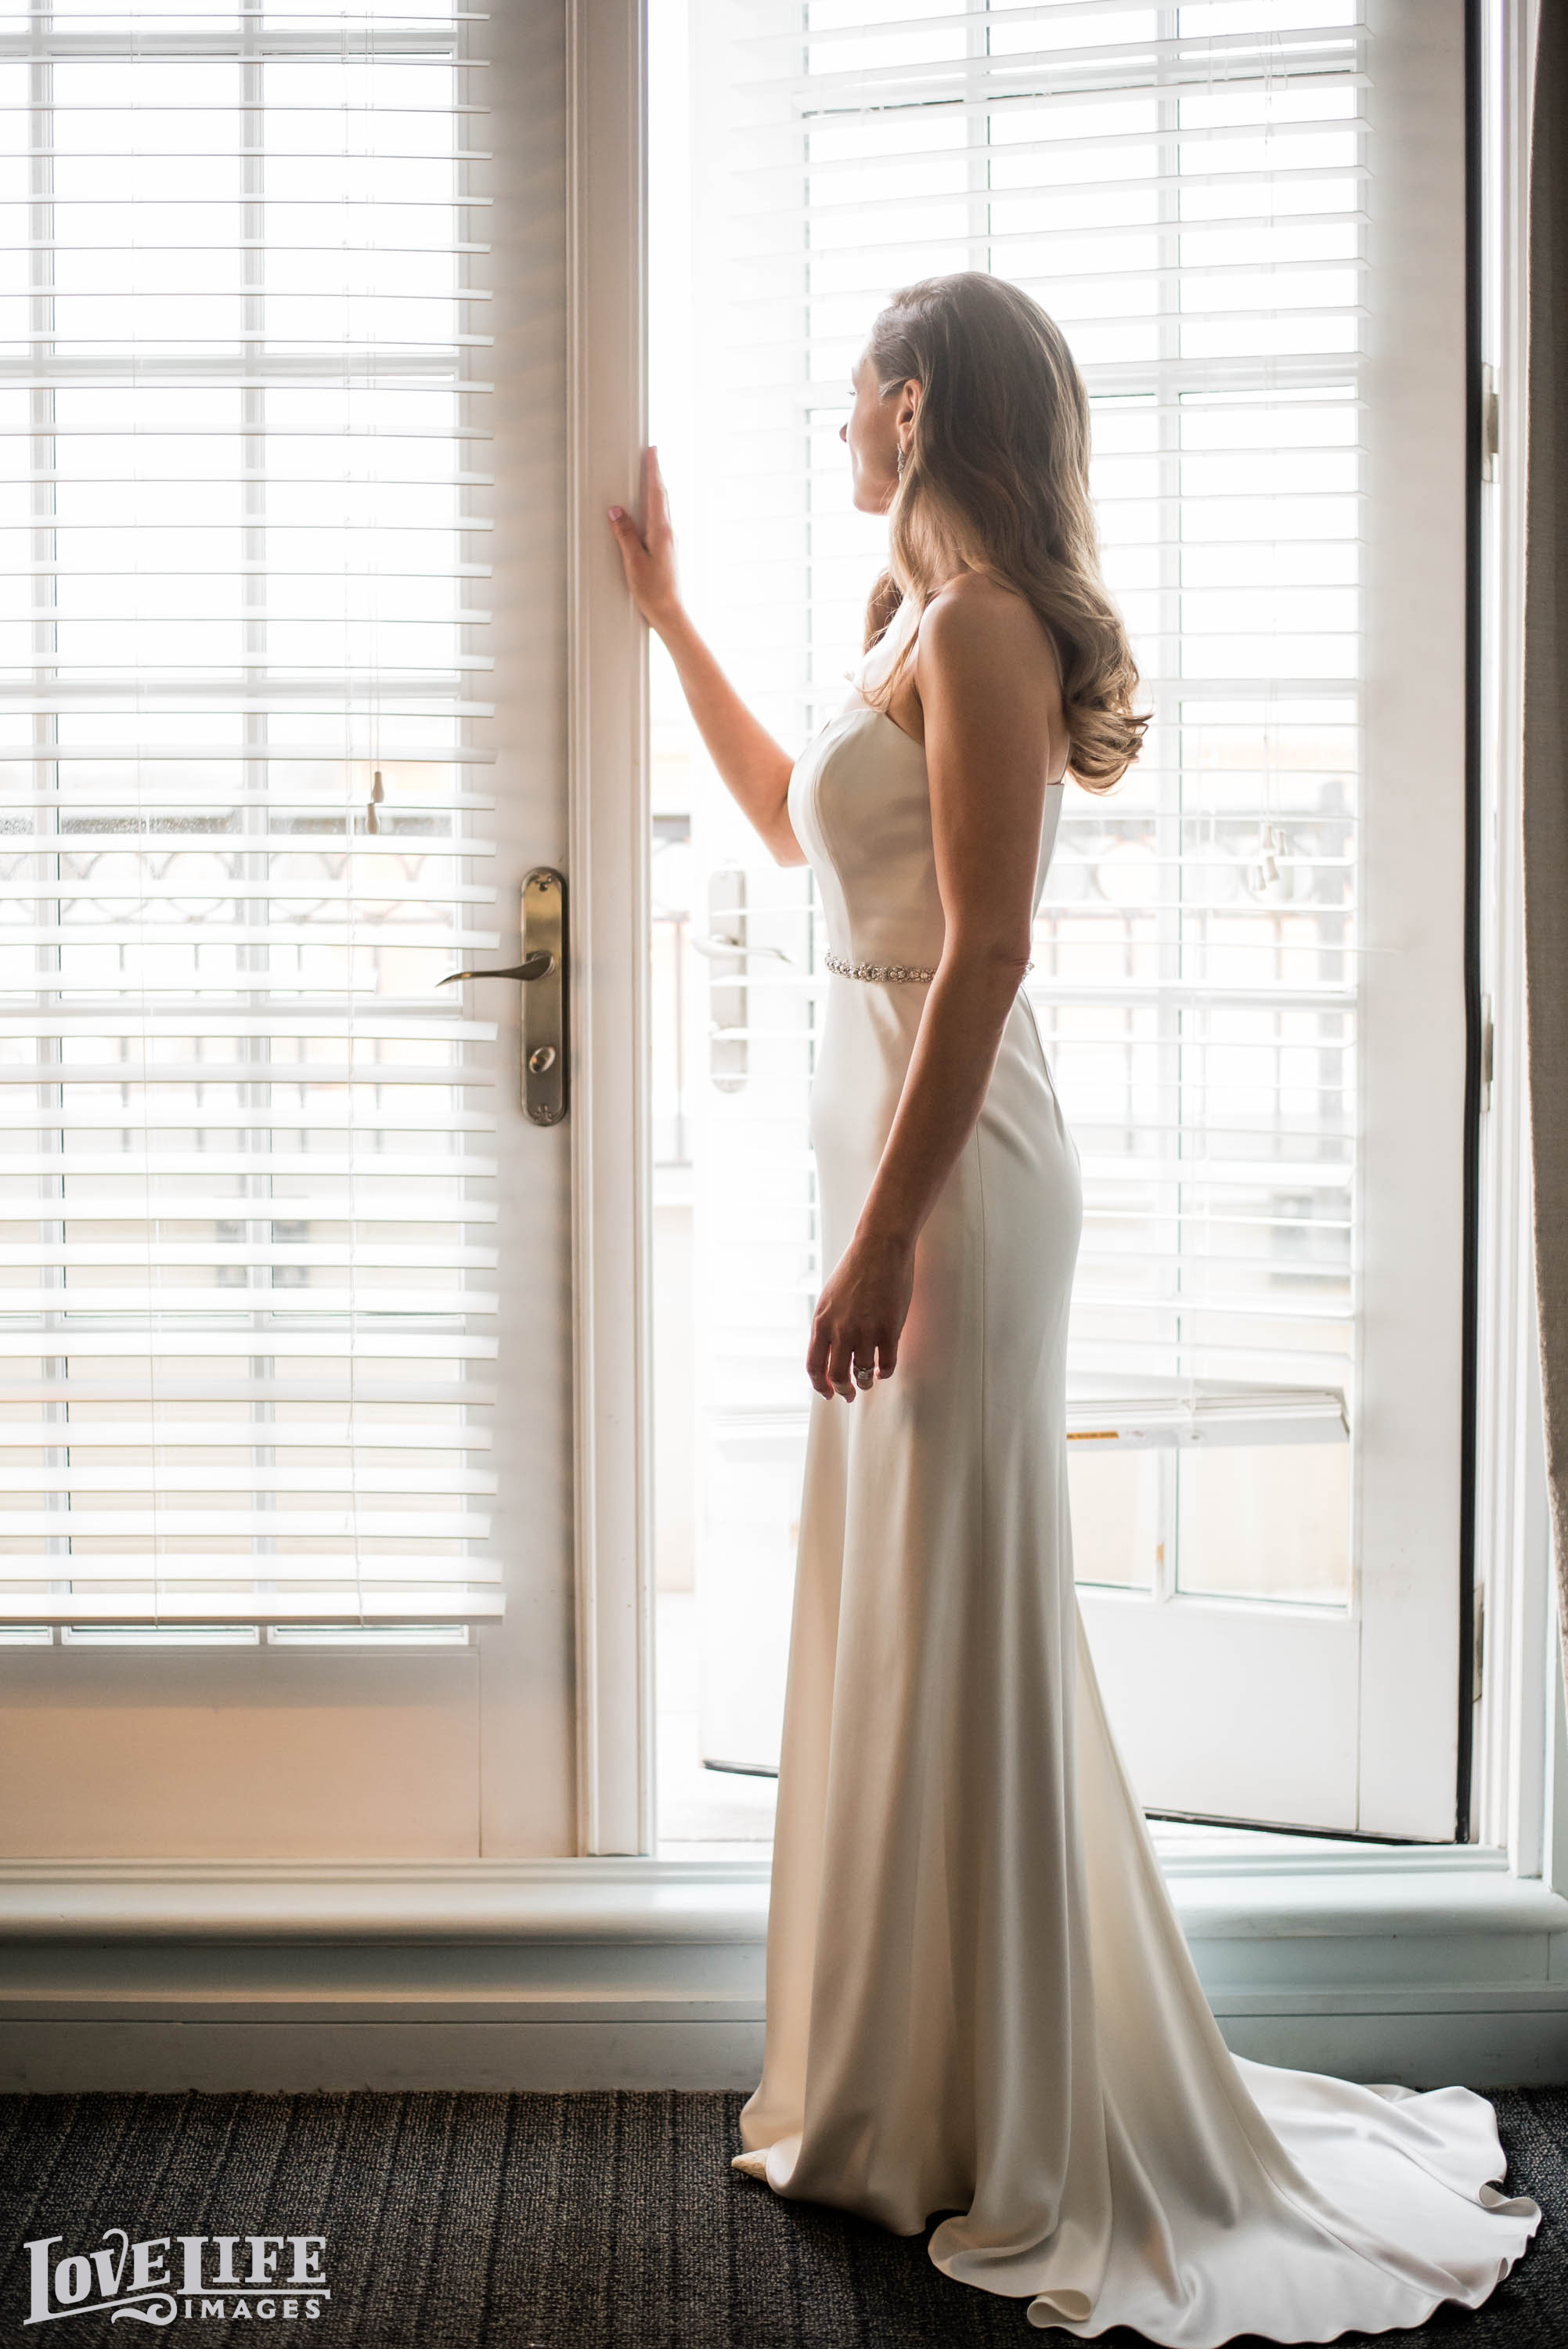 Lorien Hotel wedding Sneak Peek_001.jpg